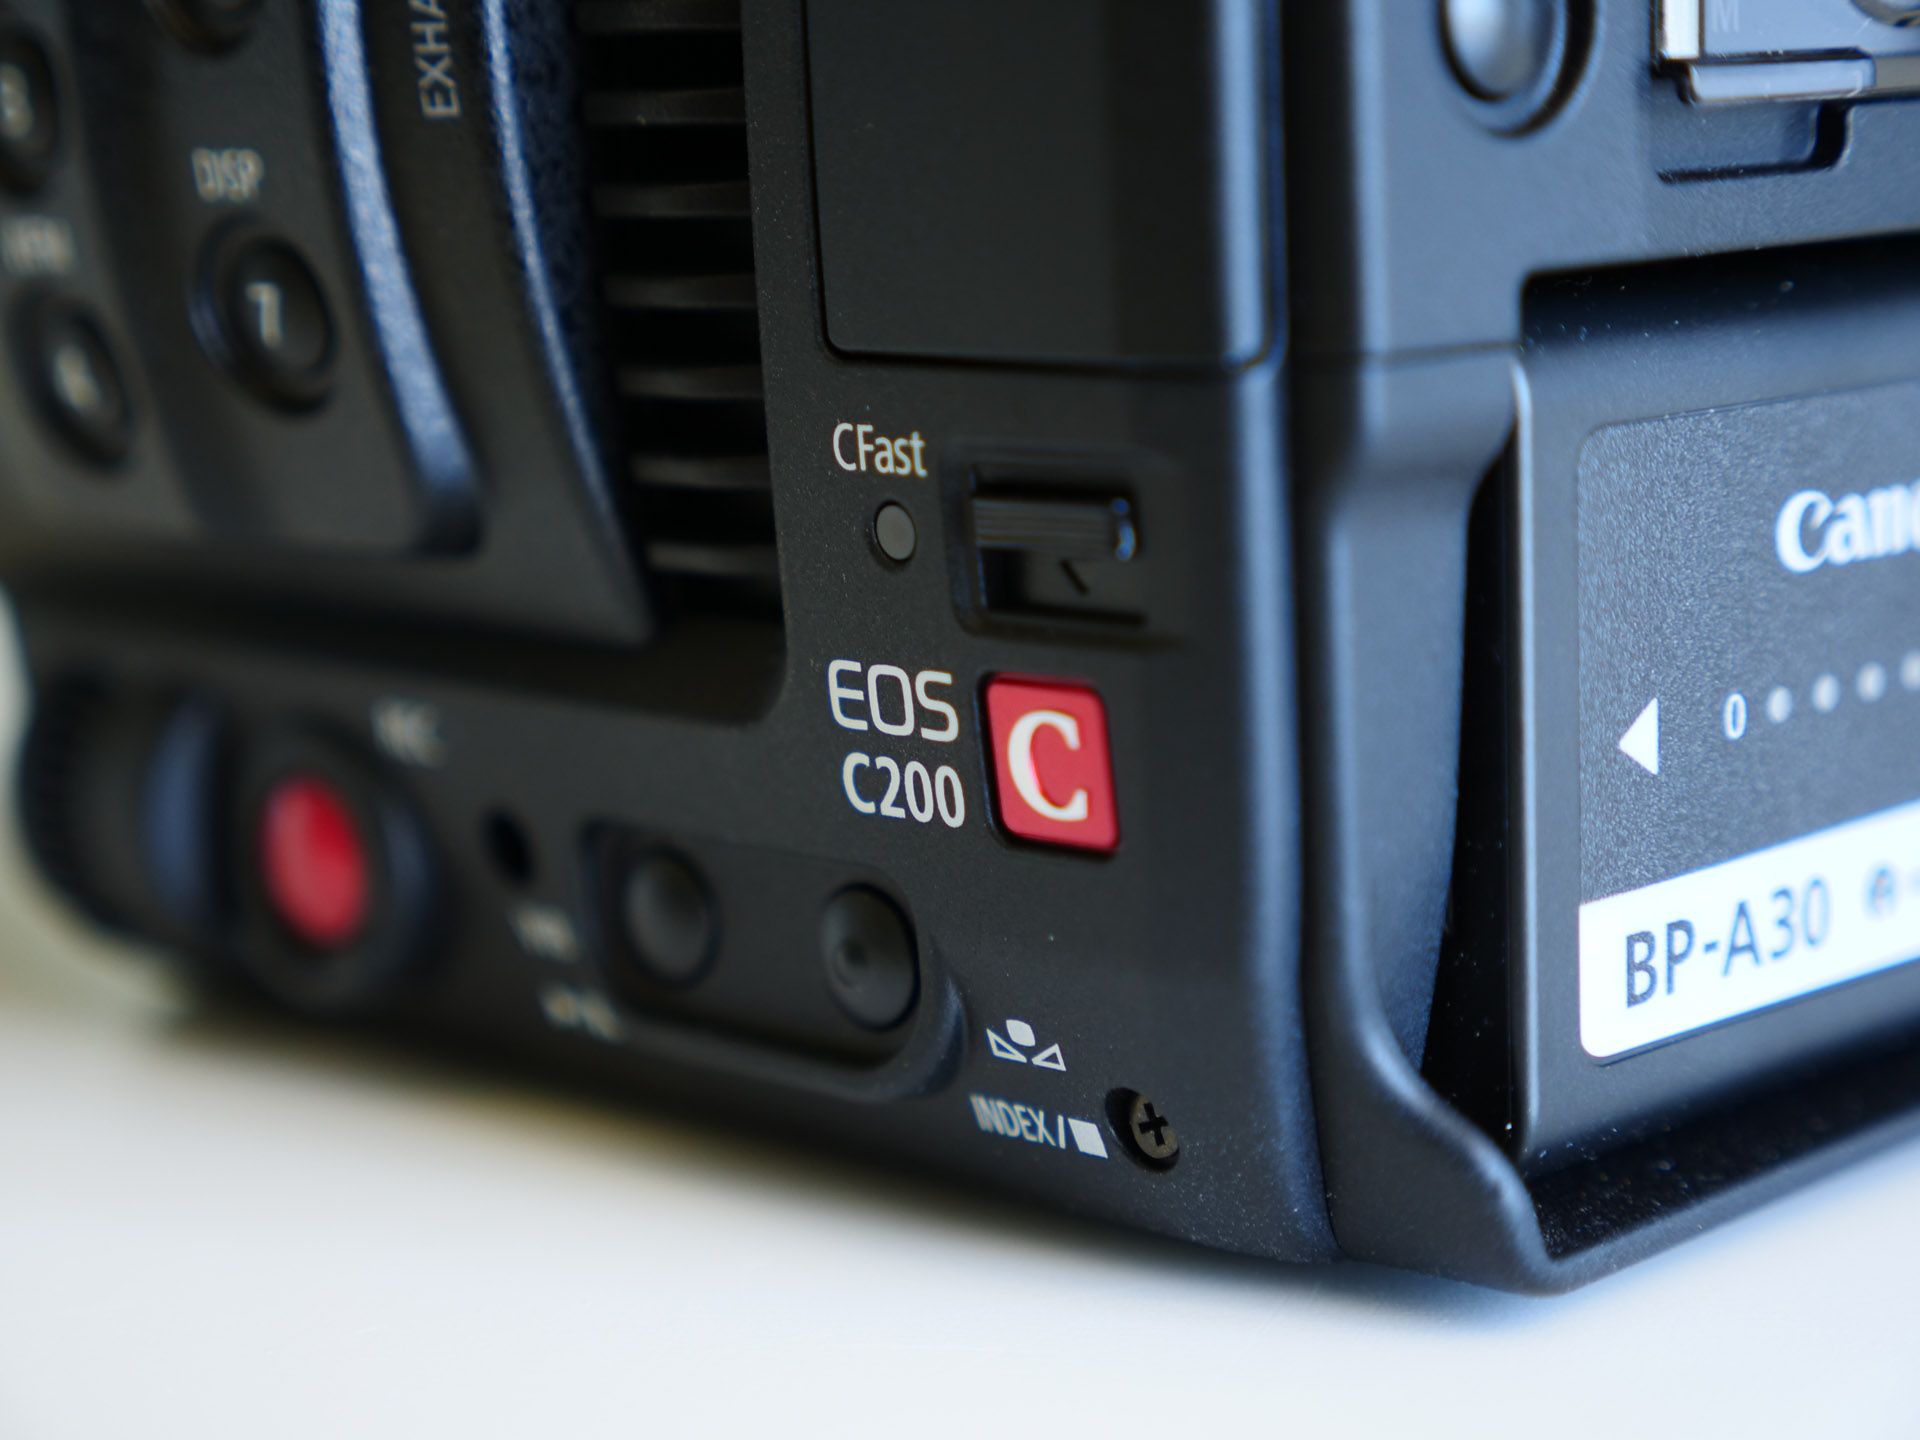 Canon C200 hands-on: 4K 60p, touchscreen AF, Canon Cinema